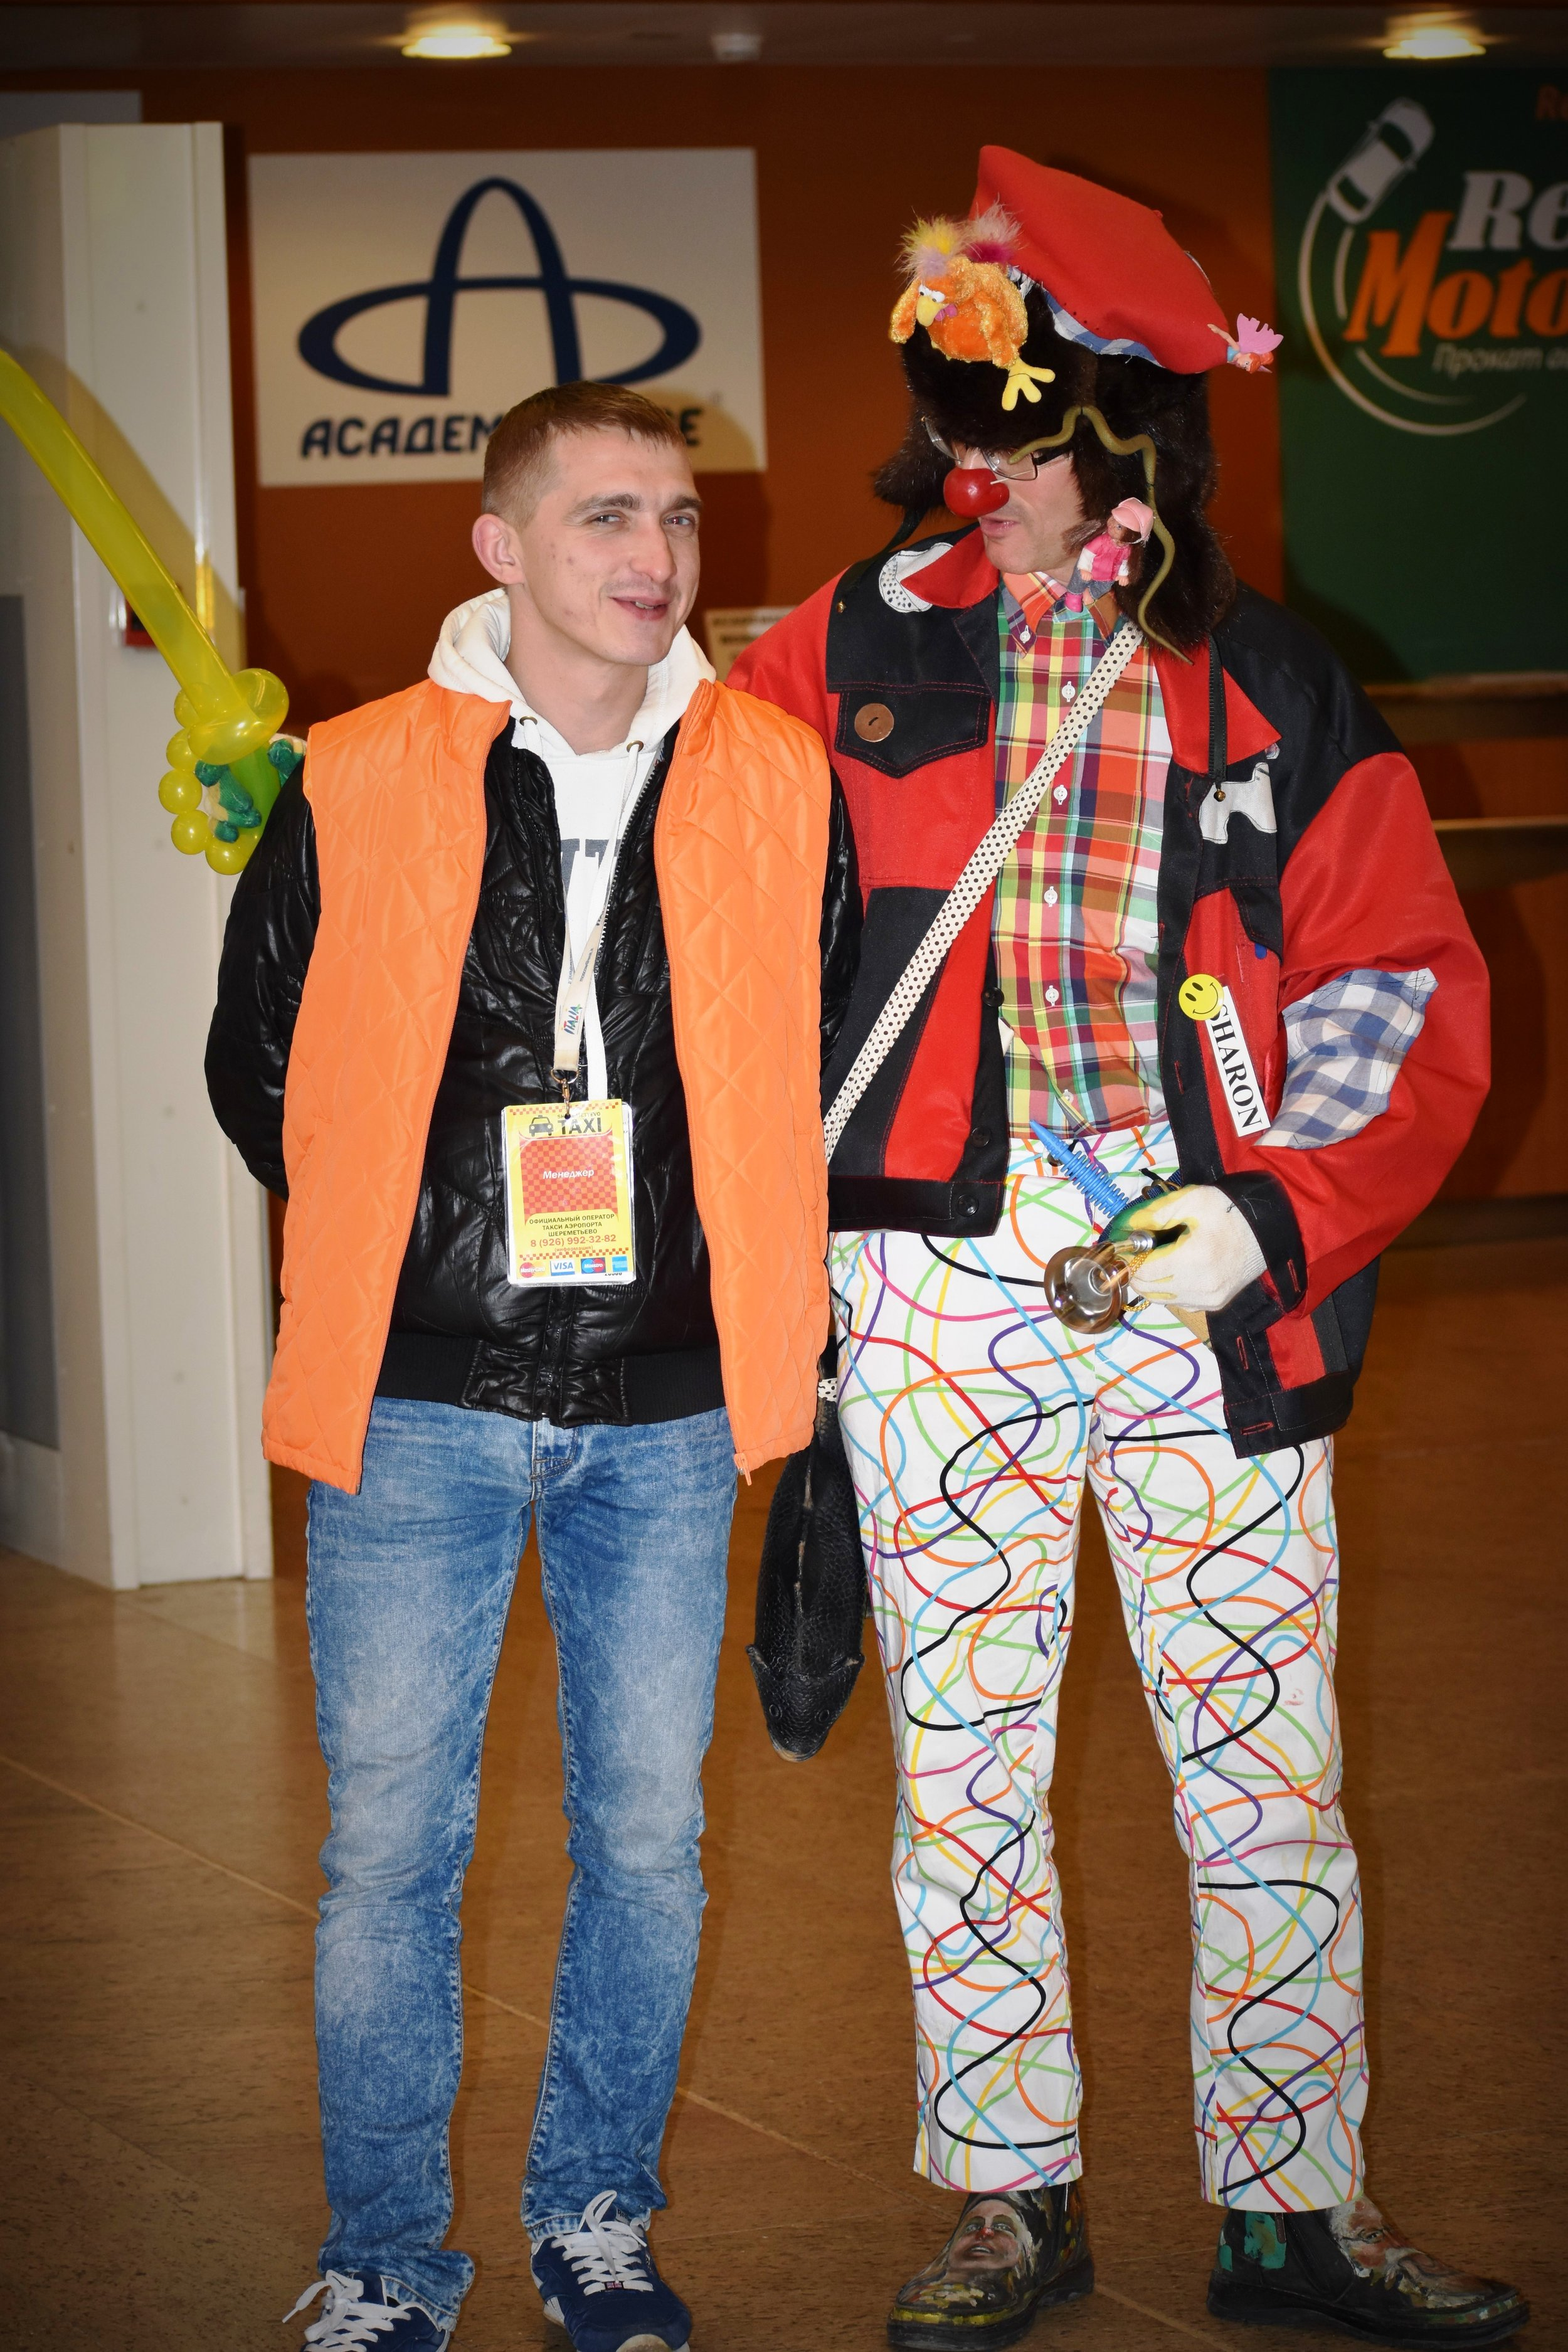 Lyosha the official taxi dispatcher was ready to give discounts to clowns